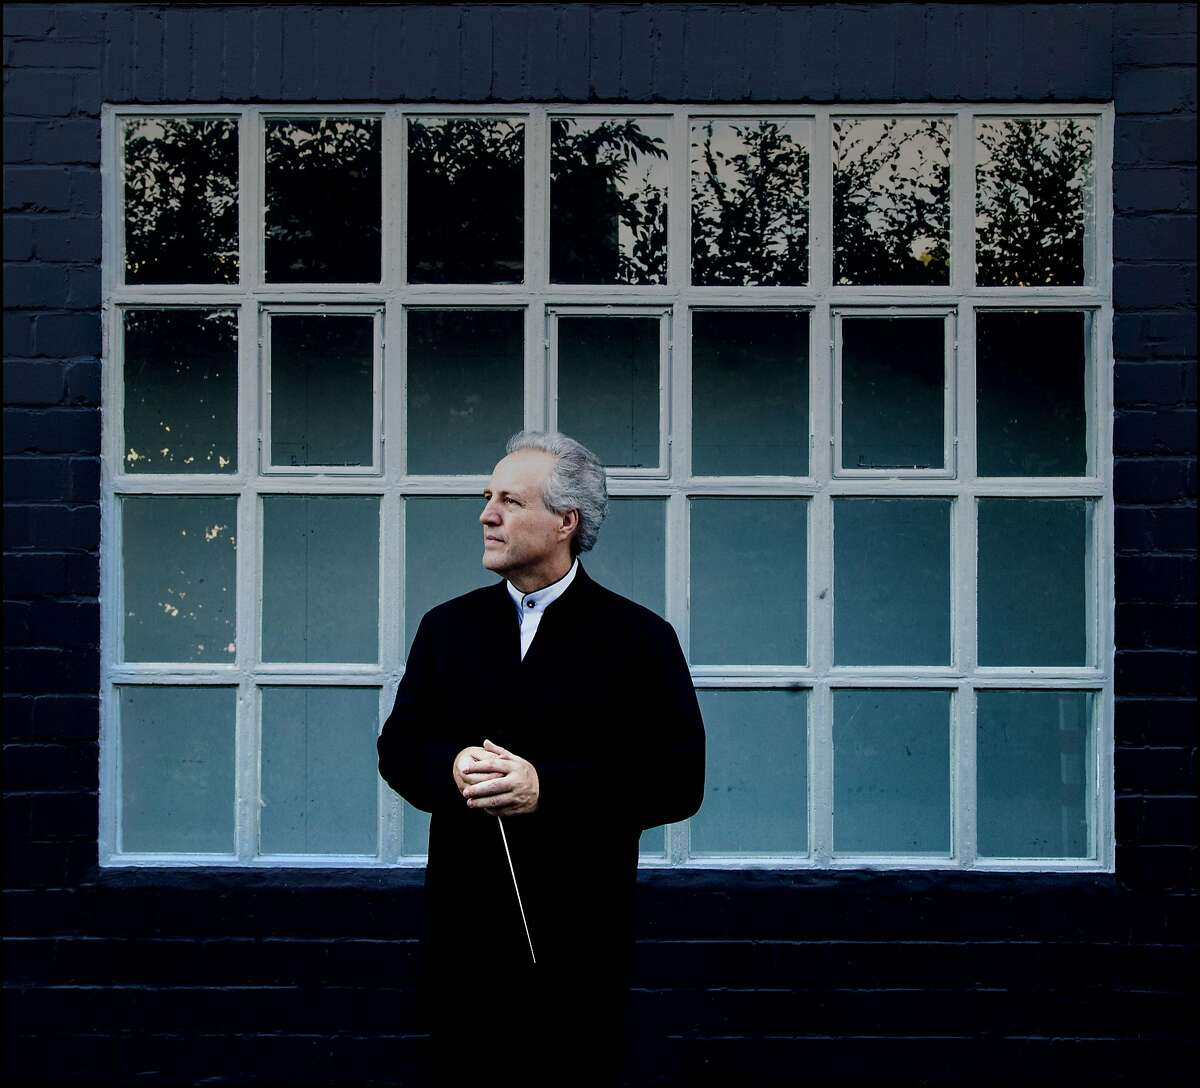 Manfred Honeck conducts the San Francisco Symphony Thursday-Saturday in Davies Symphony Hall